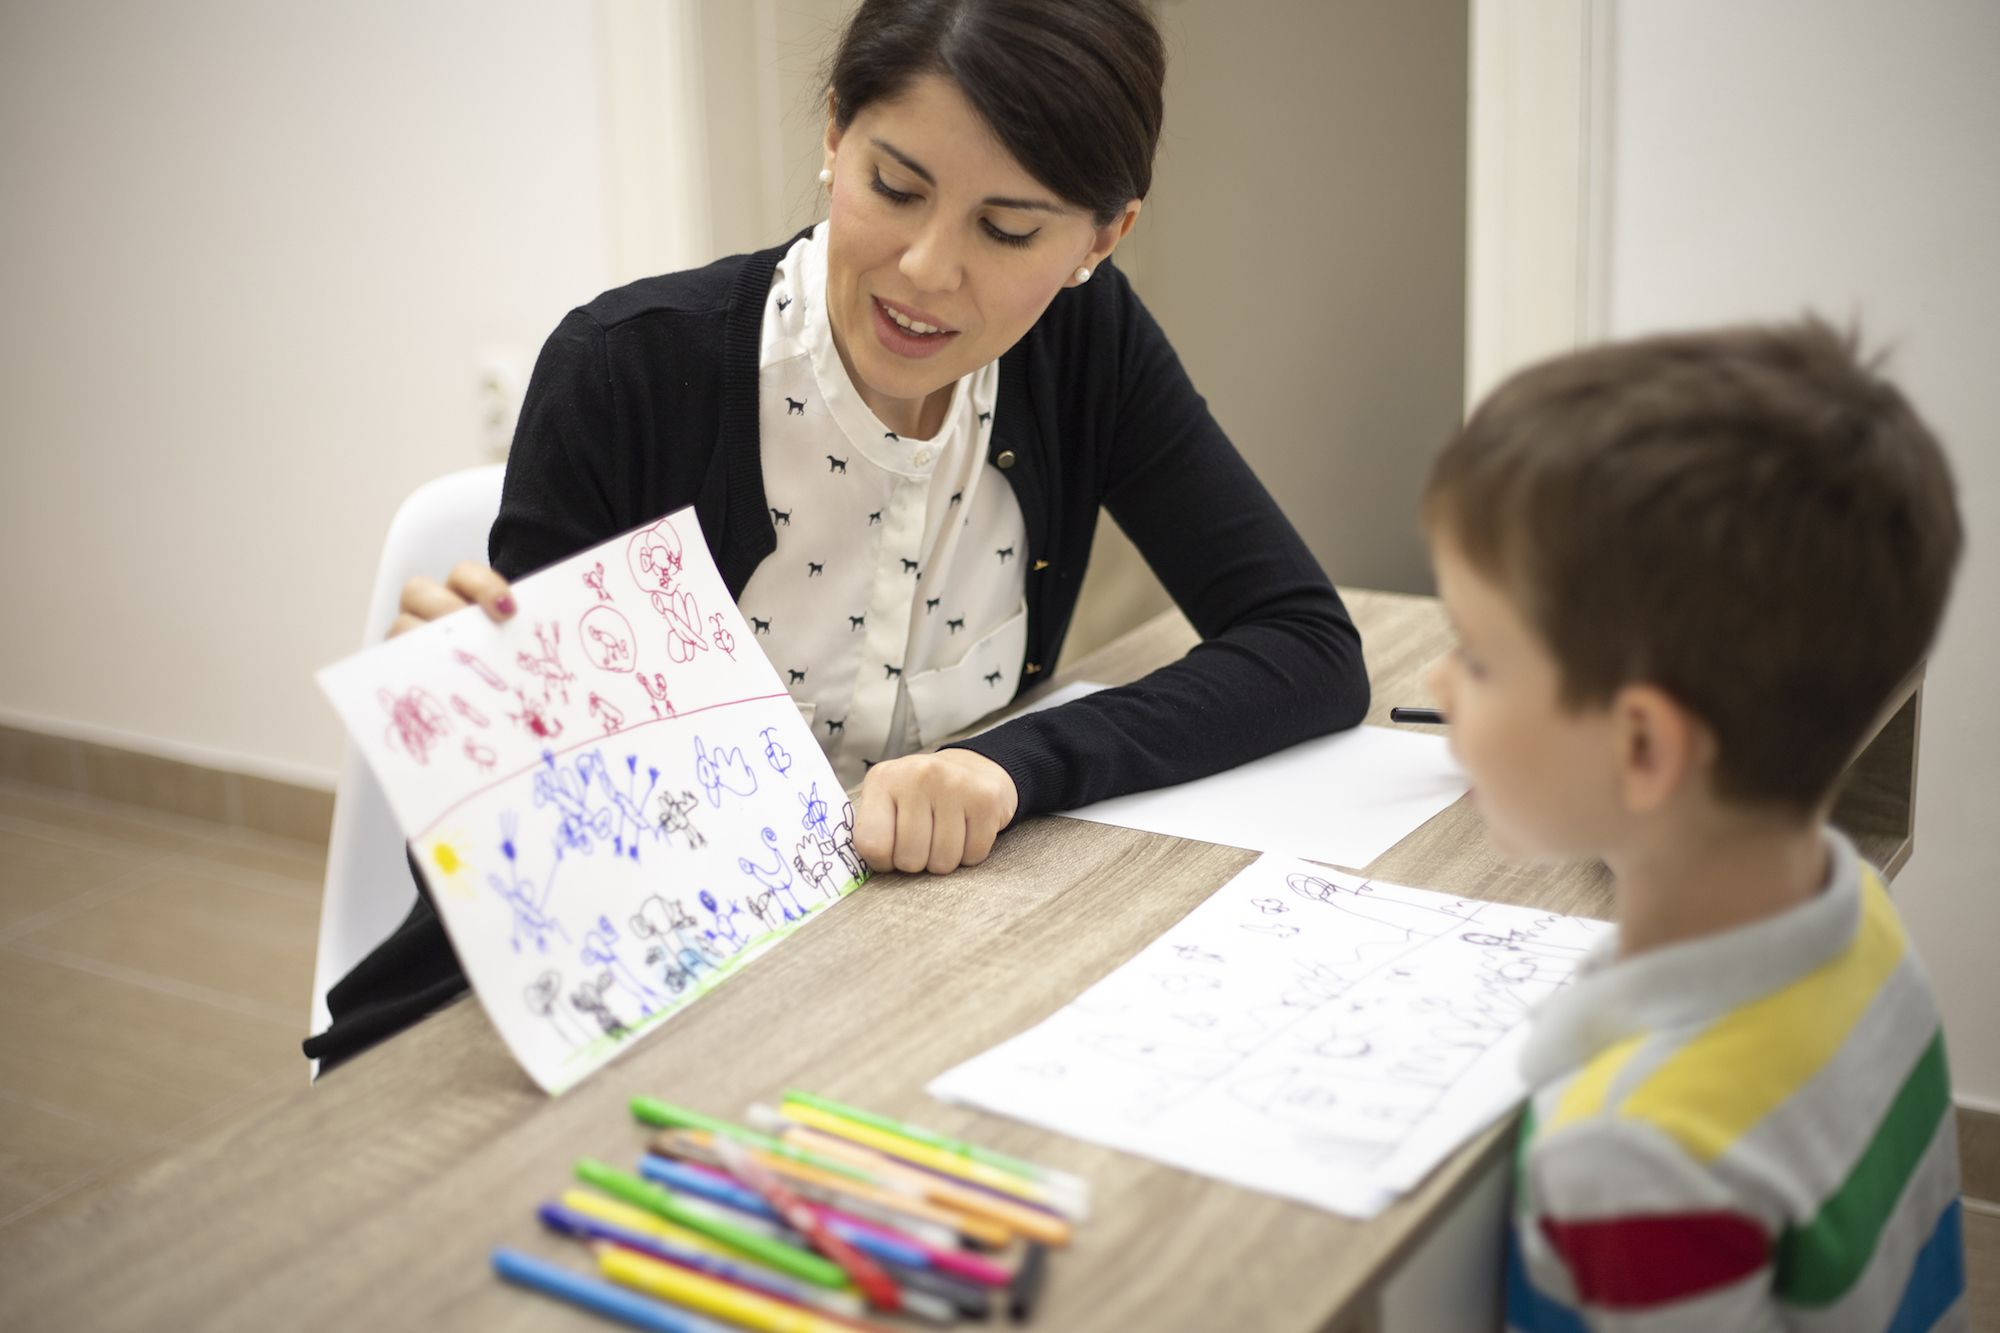 About: Best Autism Therapy Programs in Simcoe & ABA Therapists near me